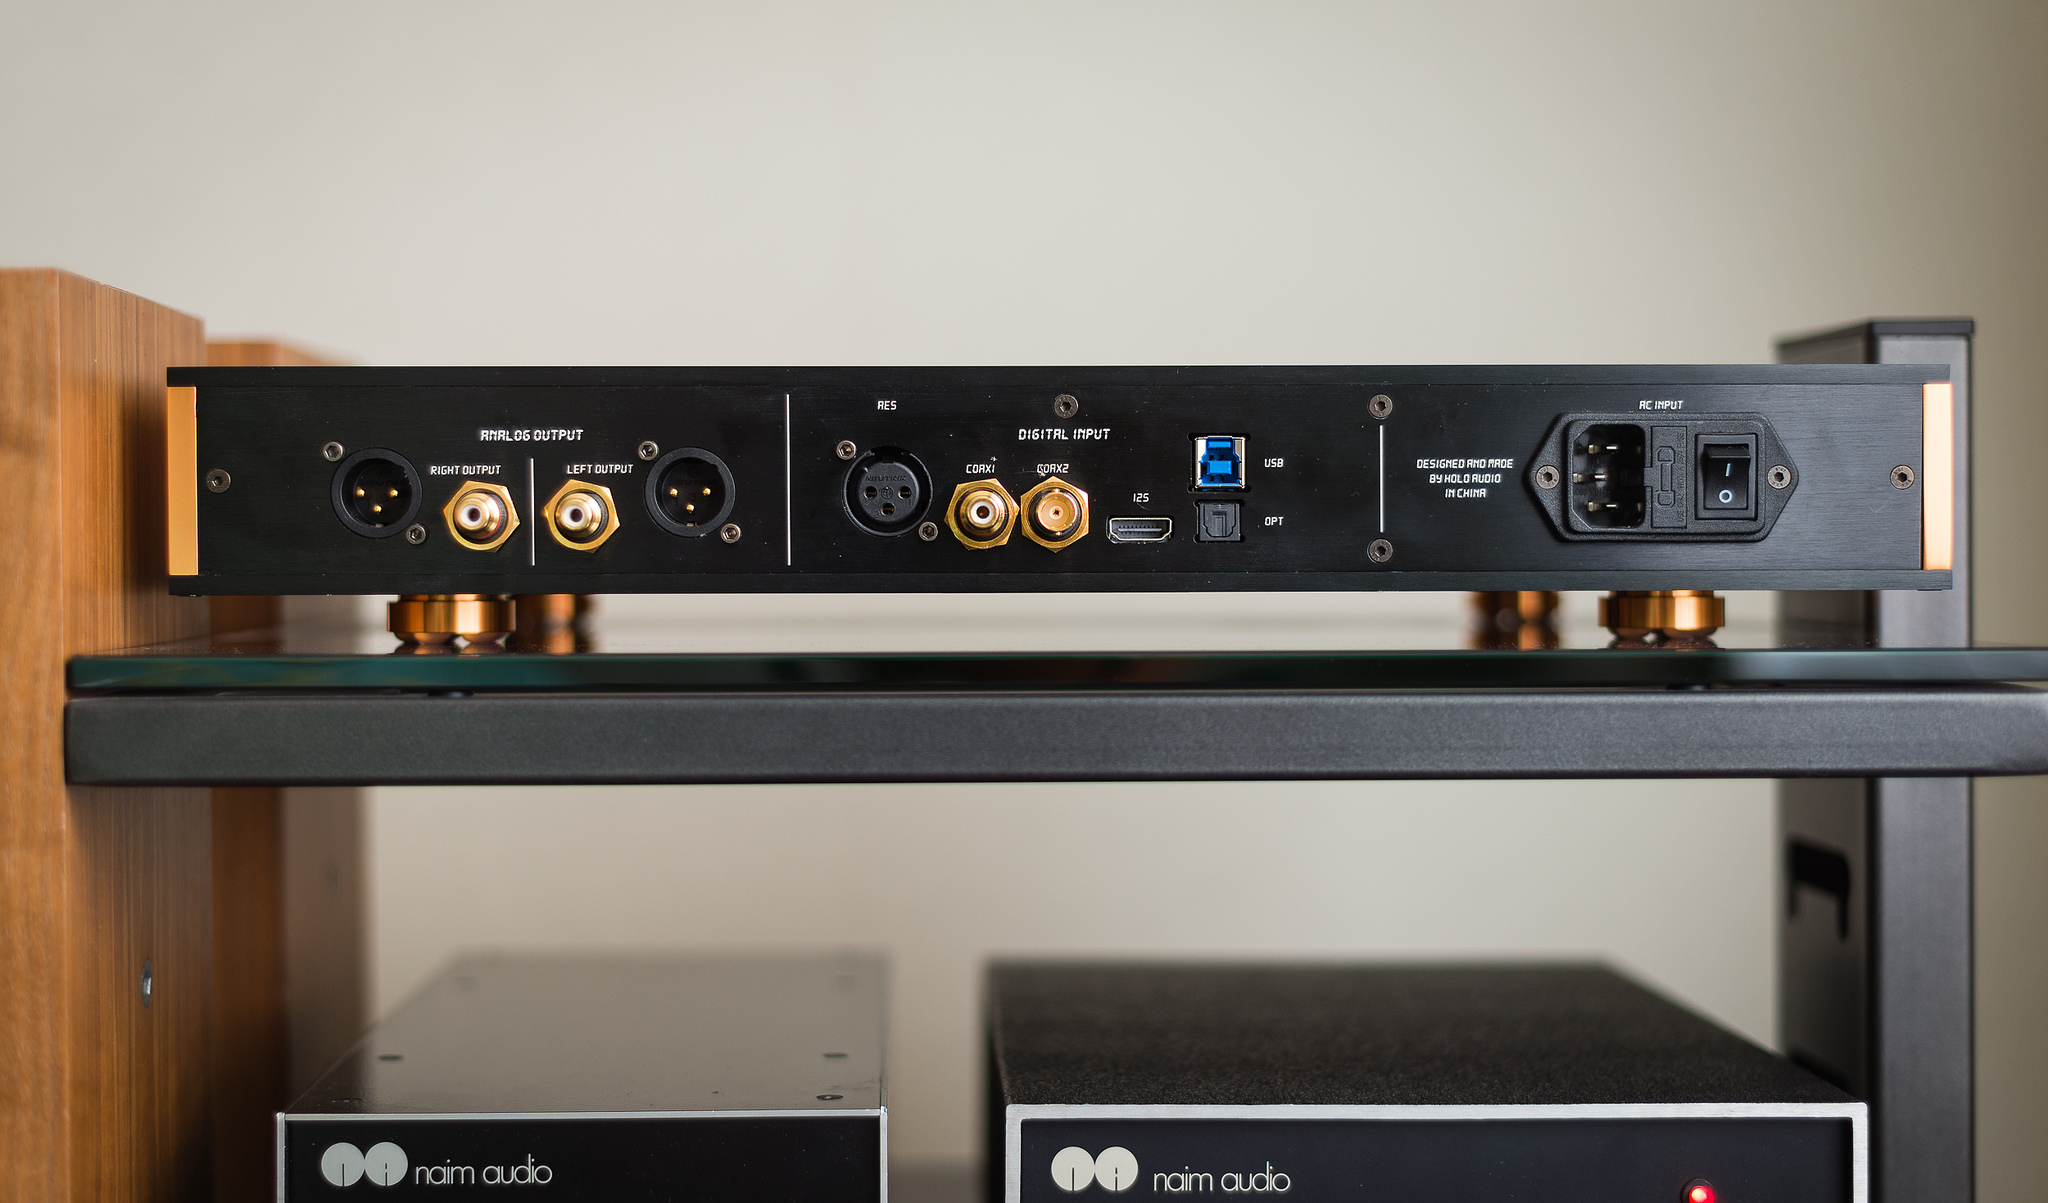 Holo Spring DAC R2R DSD512 — Level 3 | Headphone Reviews and